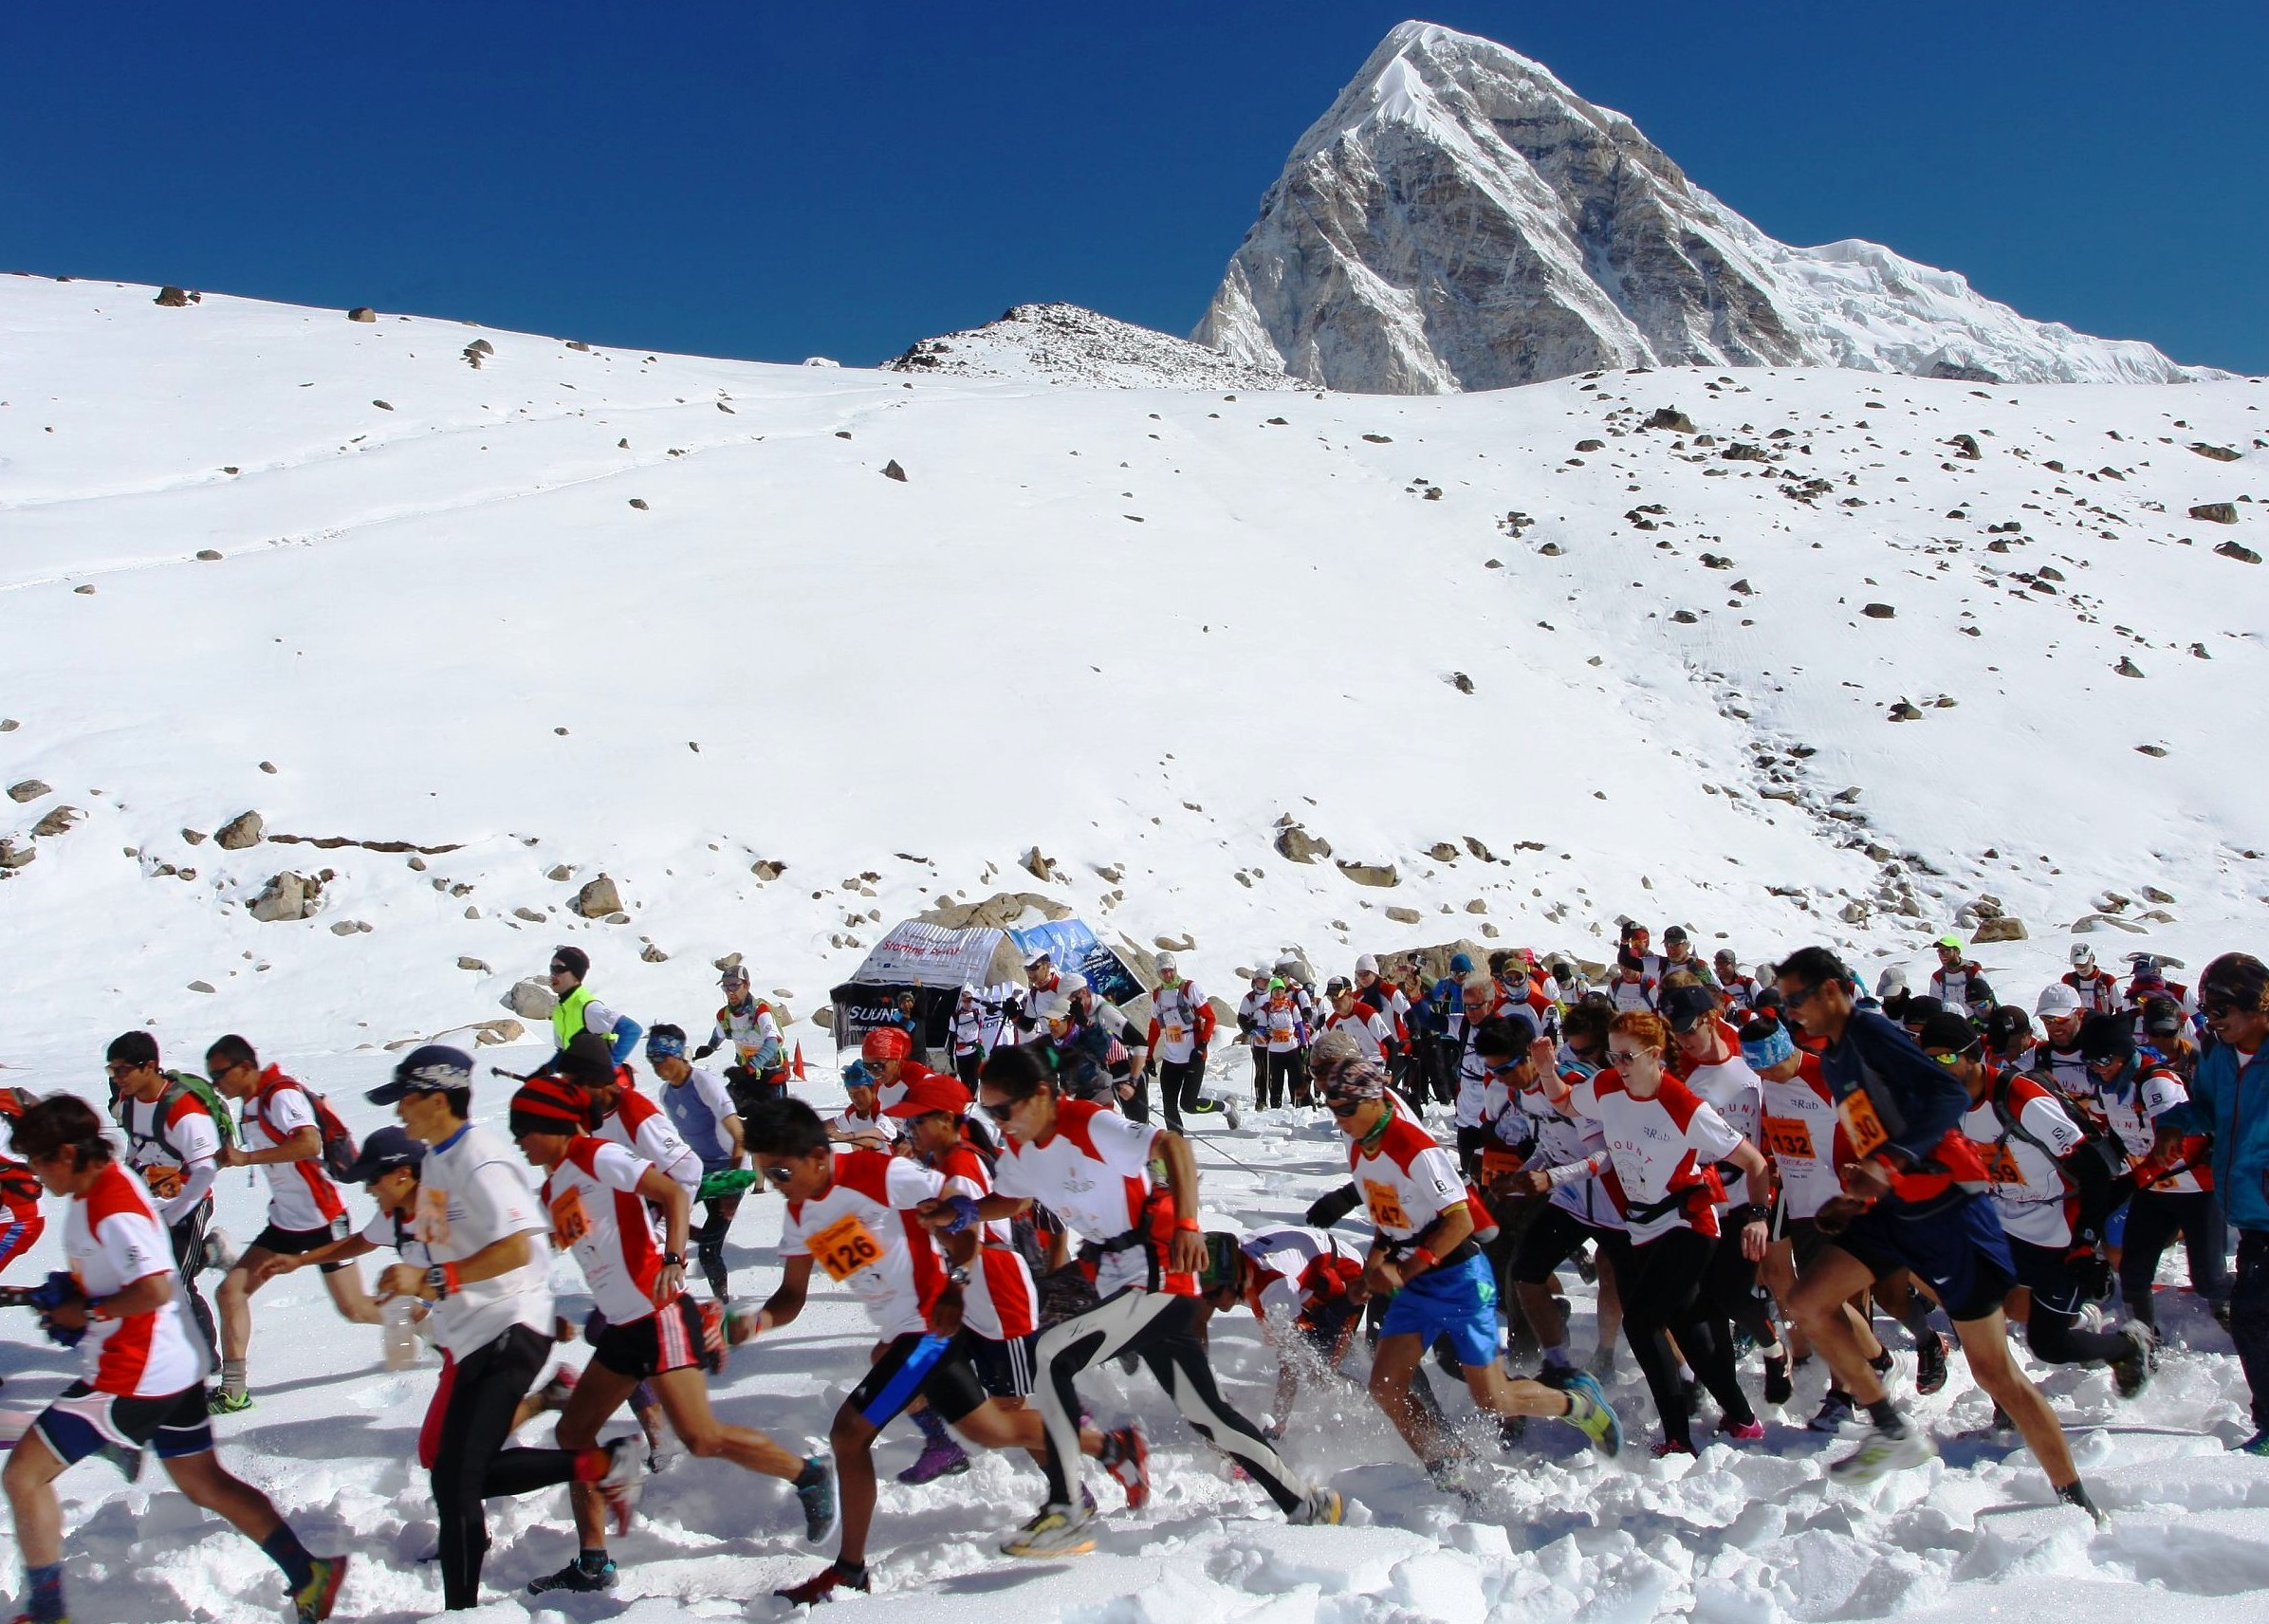 Runners with snowy mountain behind in Everest Marathon